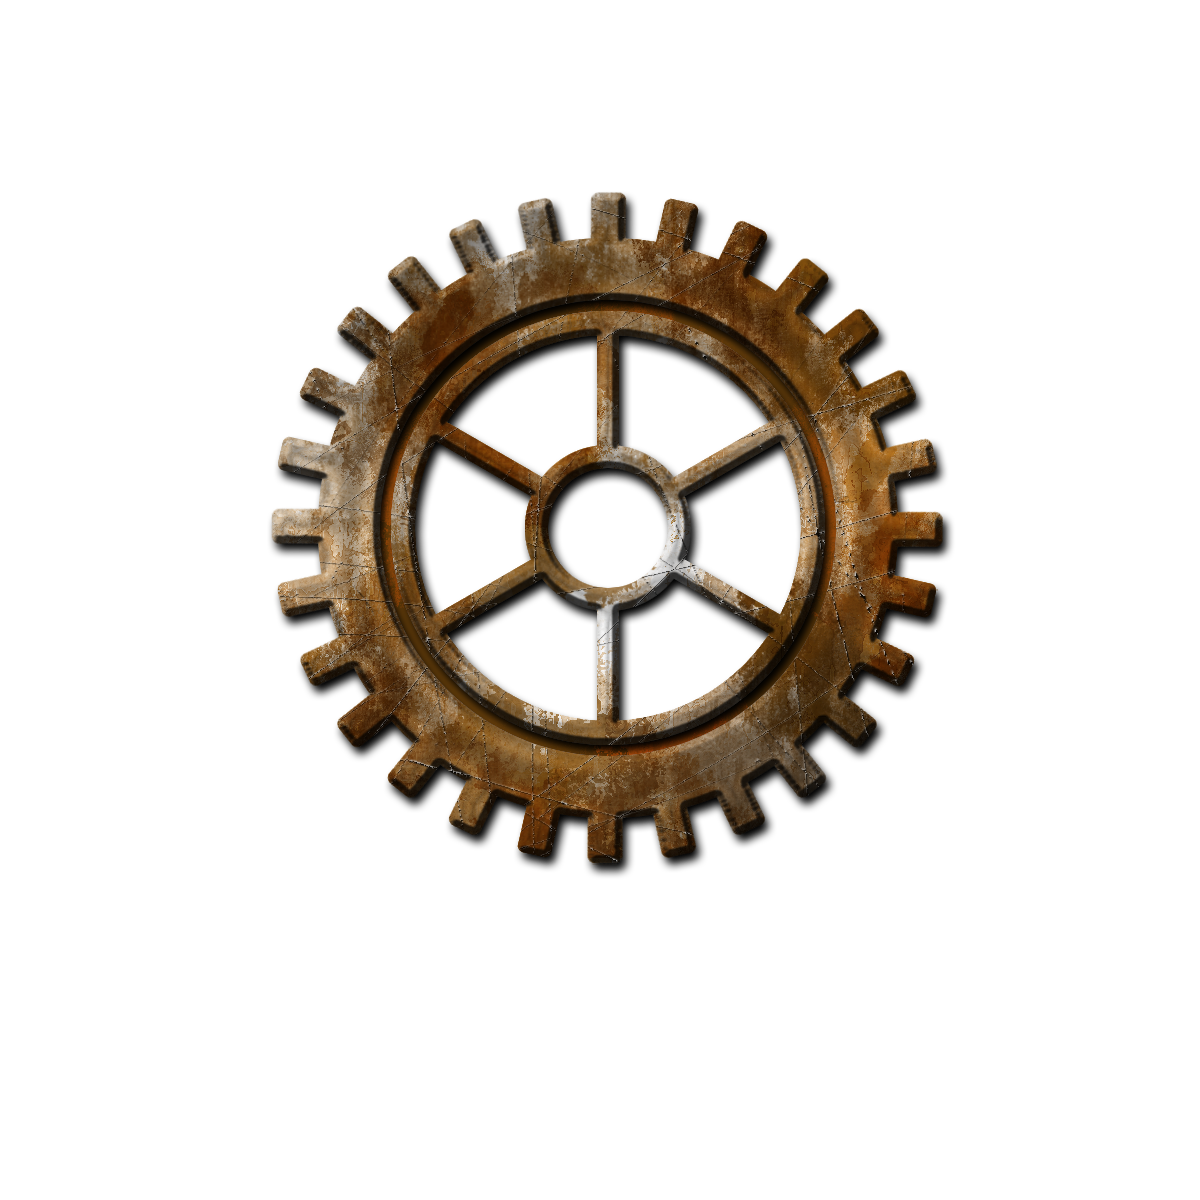 Svg gear steampunk. The sum of all